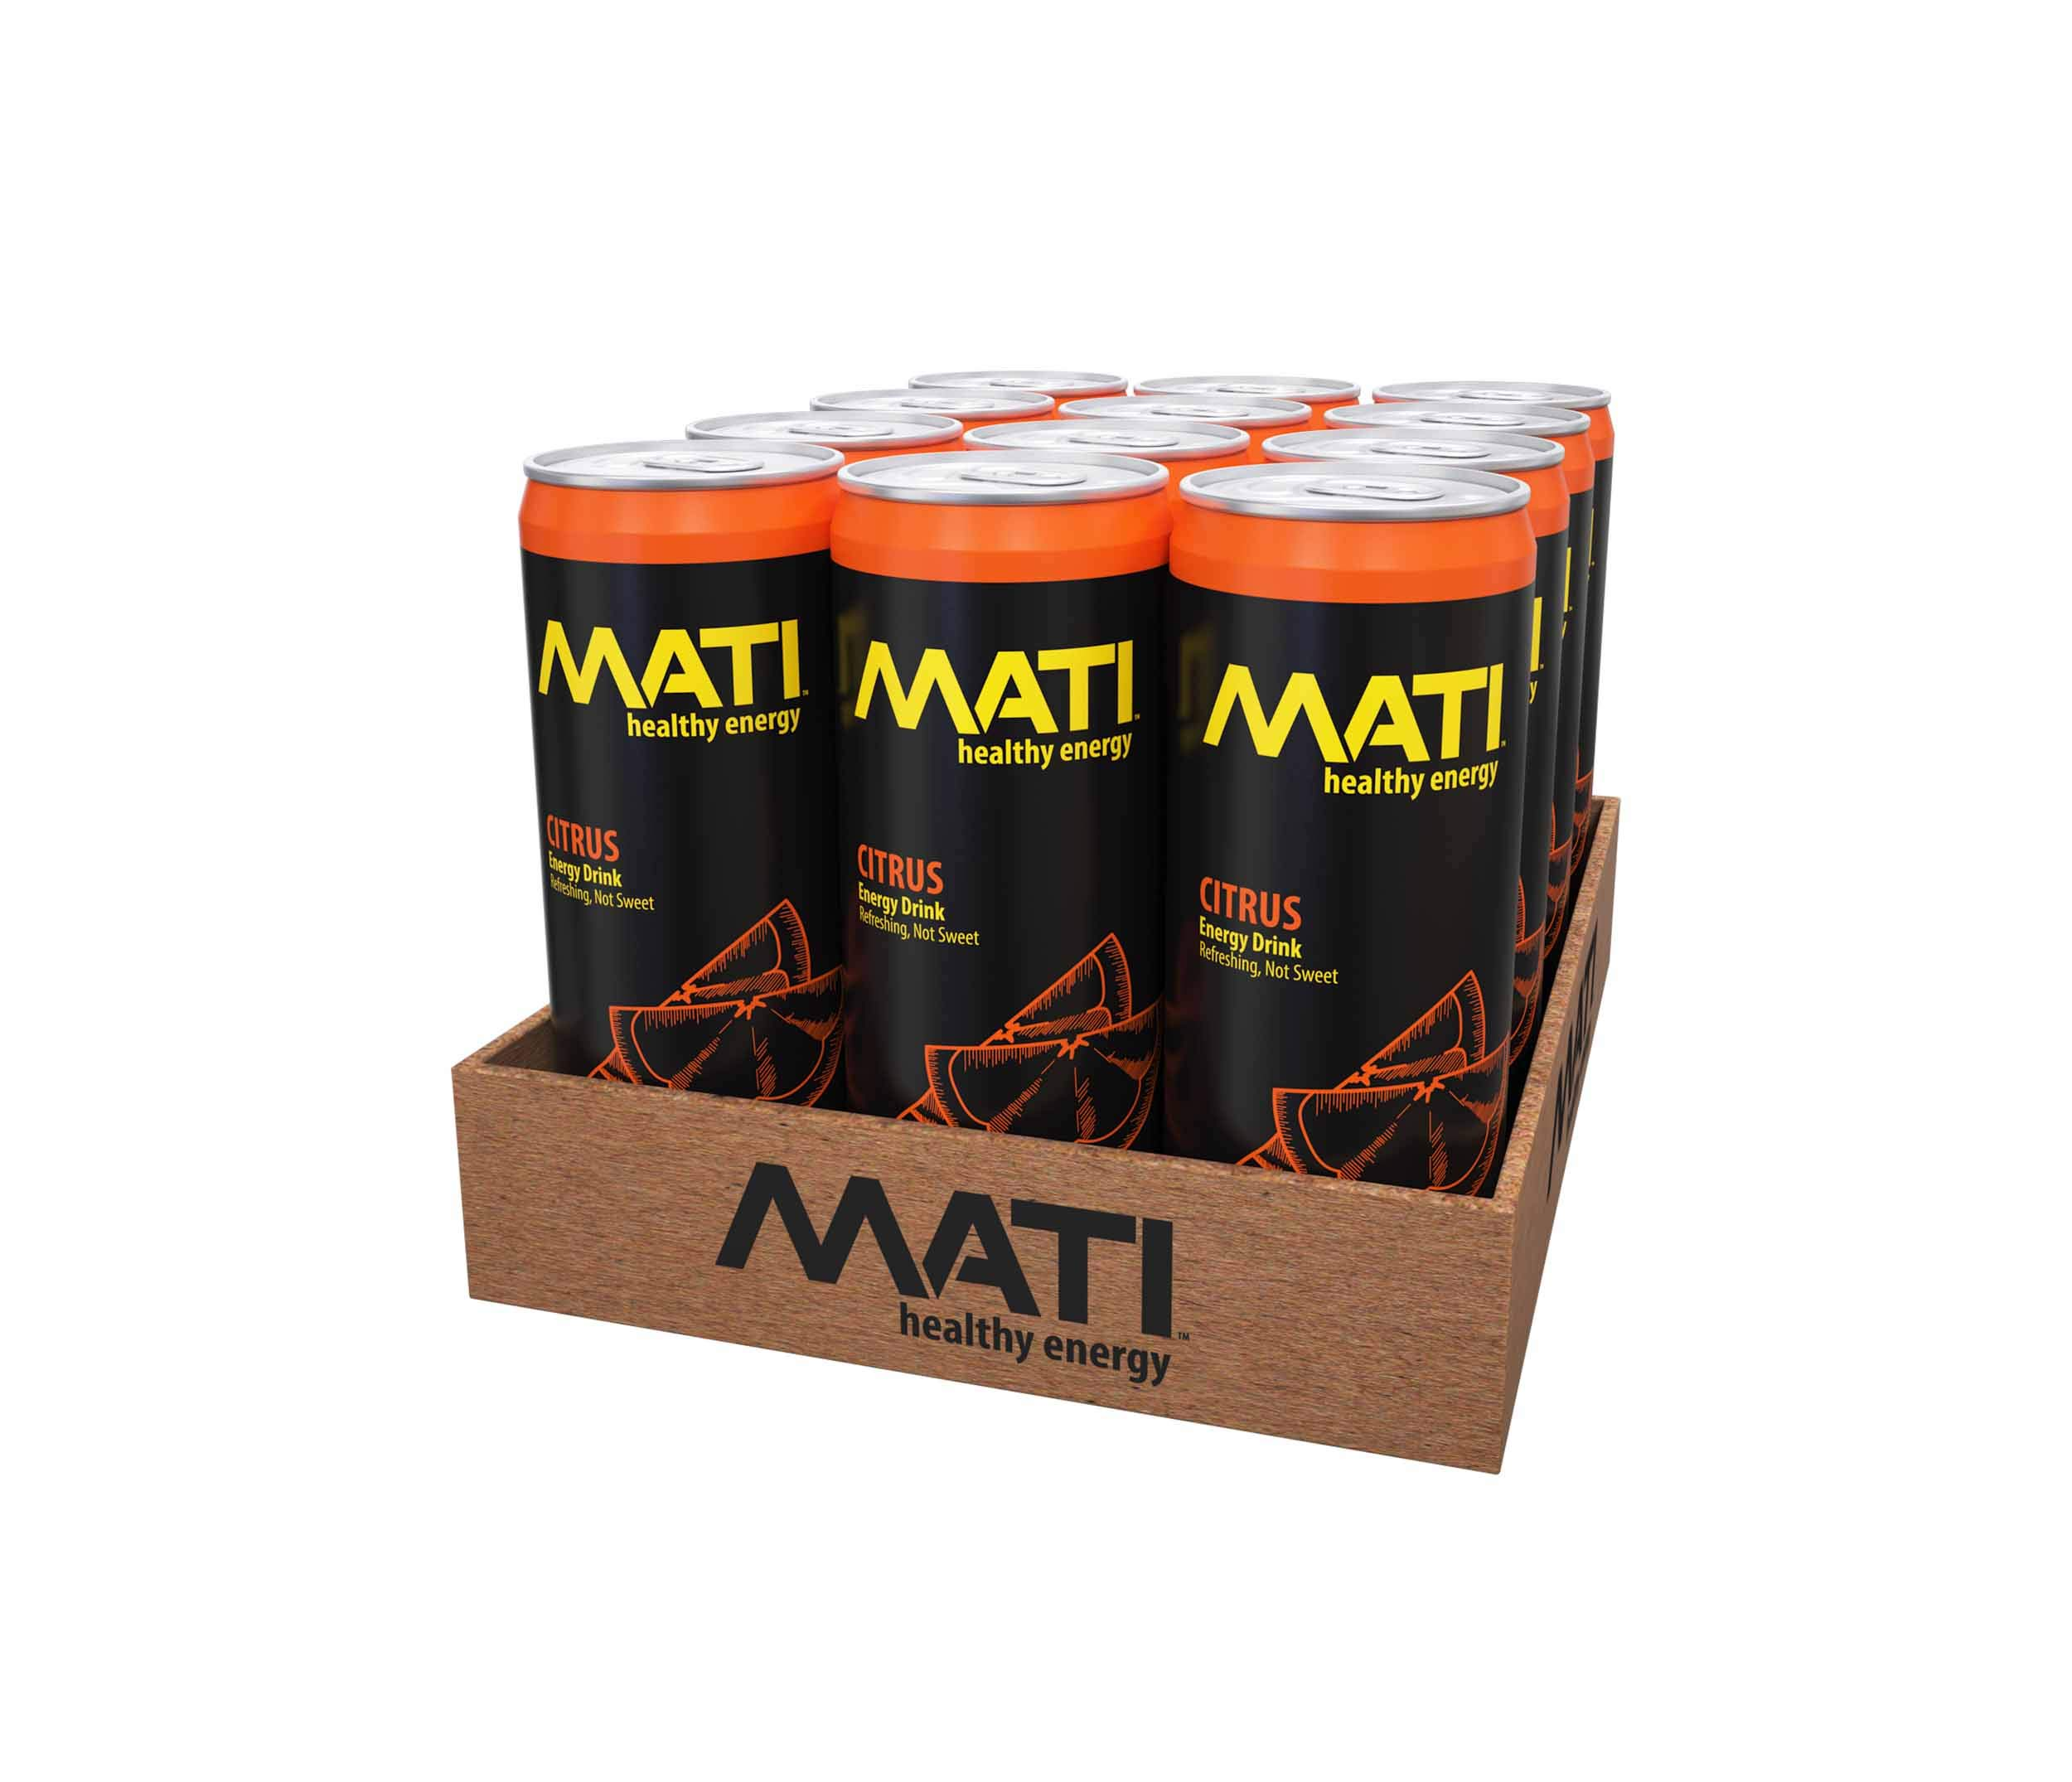 MATI | Natural Healthy Energy Drink | Low Calorie Option | Citrus Flavor | 12 Pack